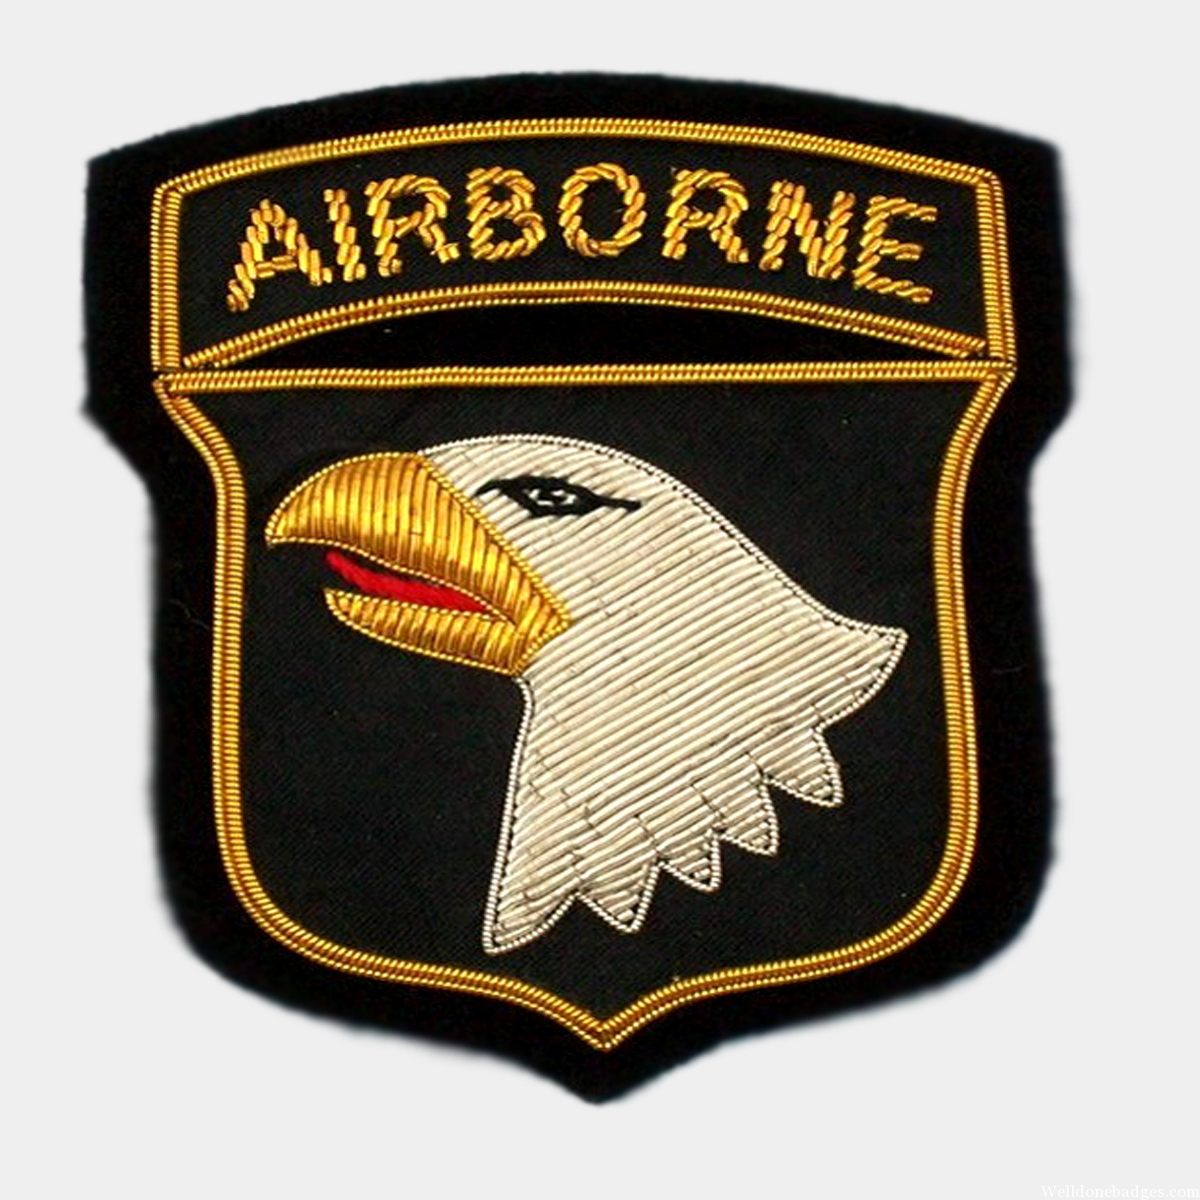 AIRBORNE DIVISION UNIFORM PATCHES